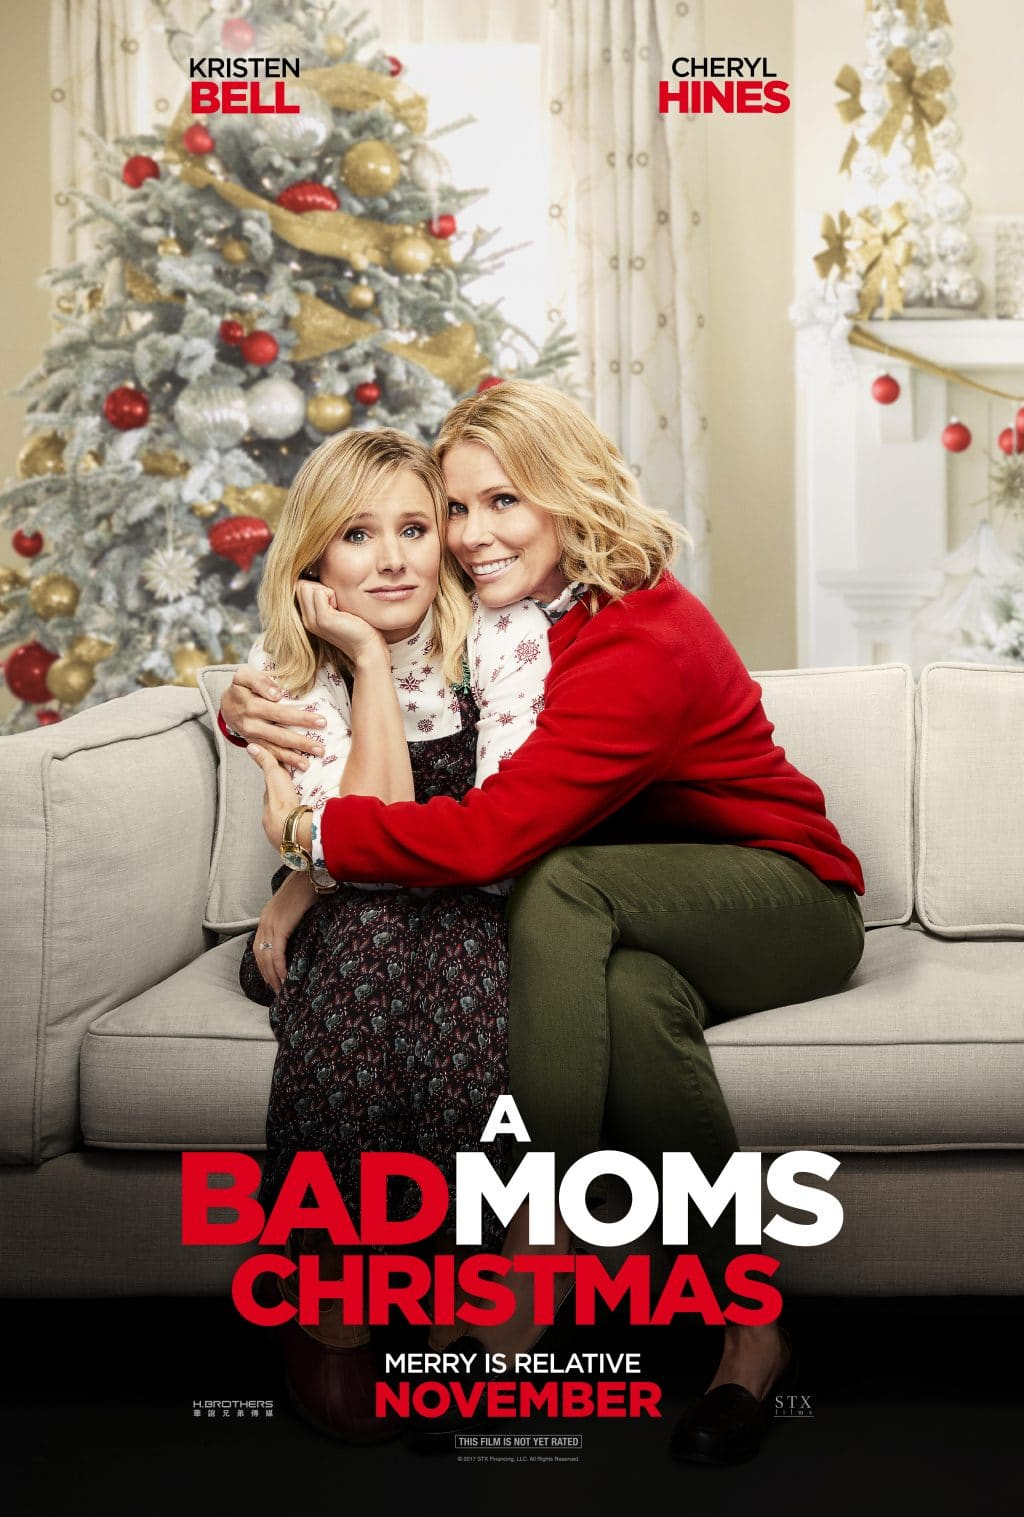 A Bad Moms Christmas Movie Review and 5 Reasons Why Bad Moms Christmas Will Be a top holiday movie